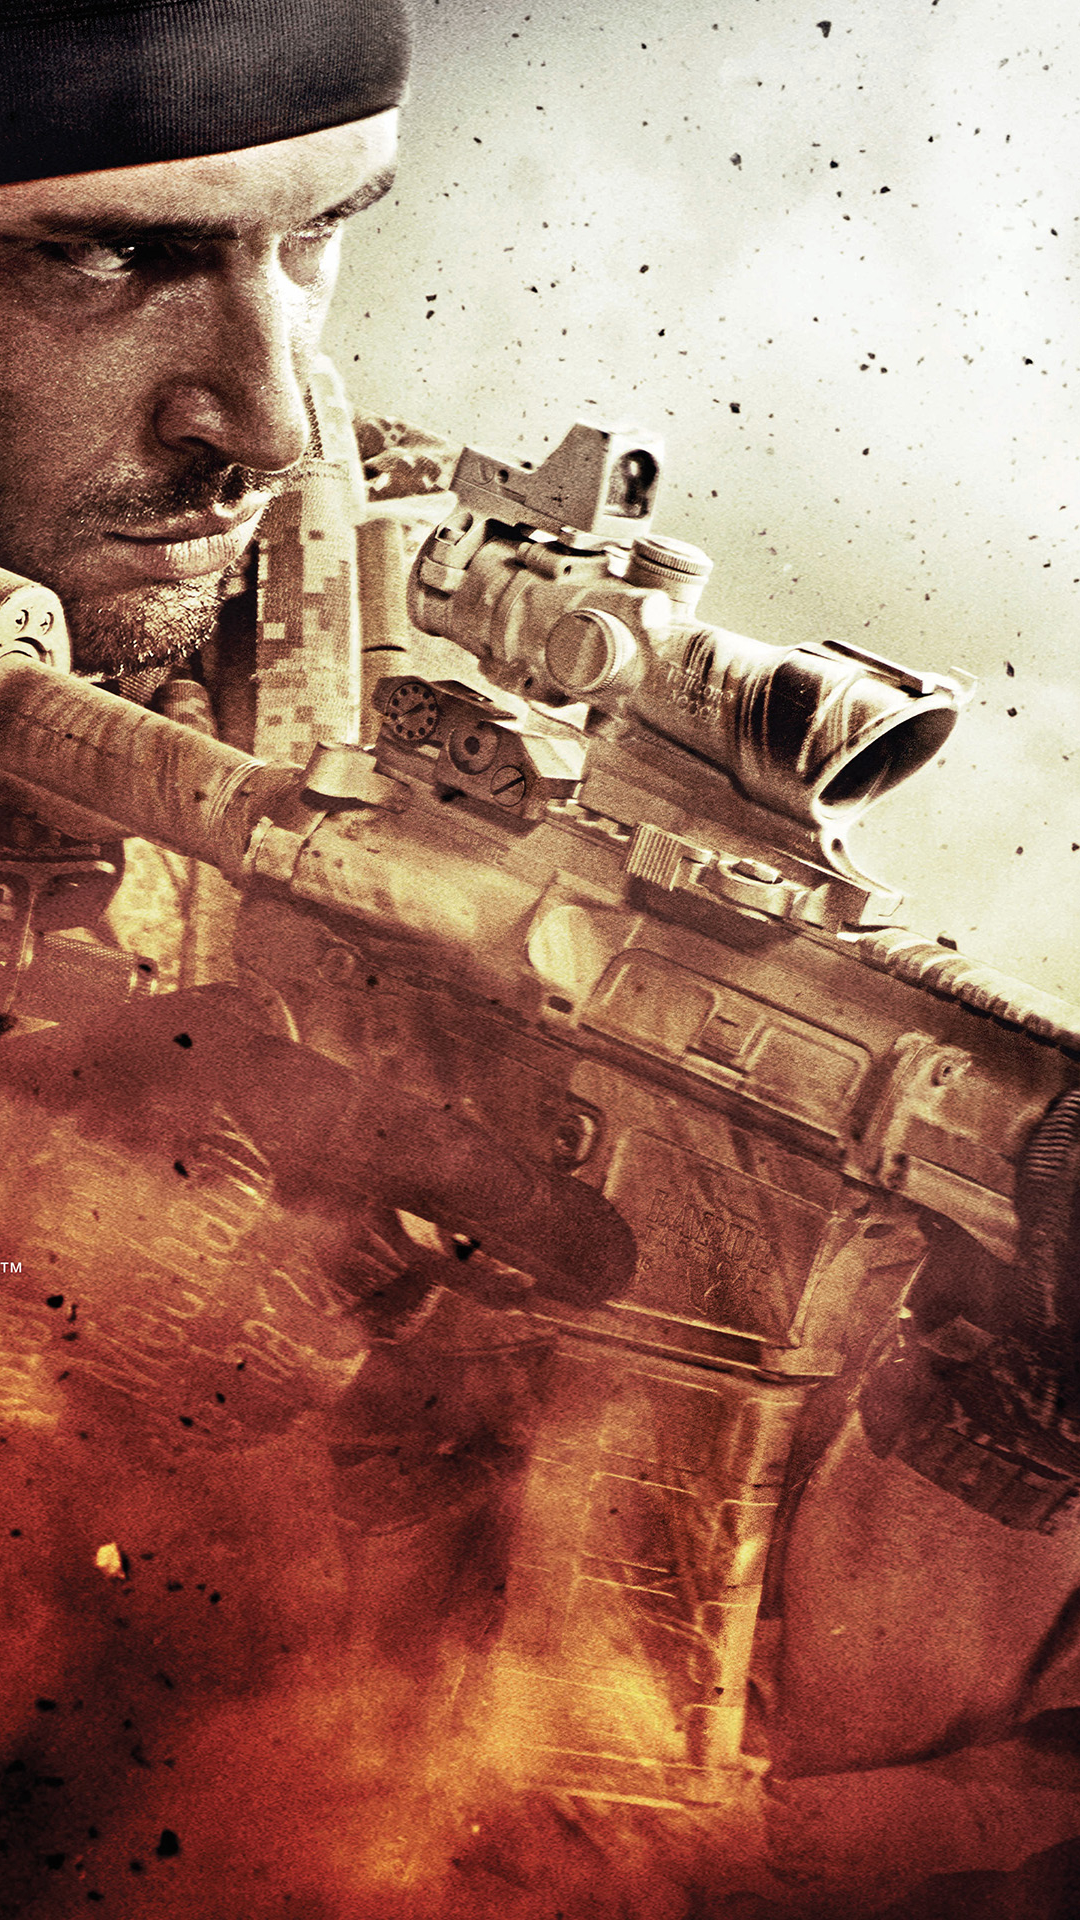 Video Game Medal Of Honor Warfighter 1080x1920 Wallpaper Id